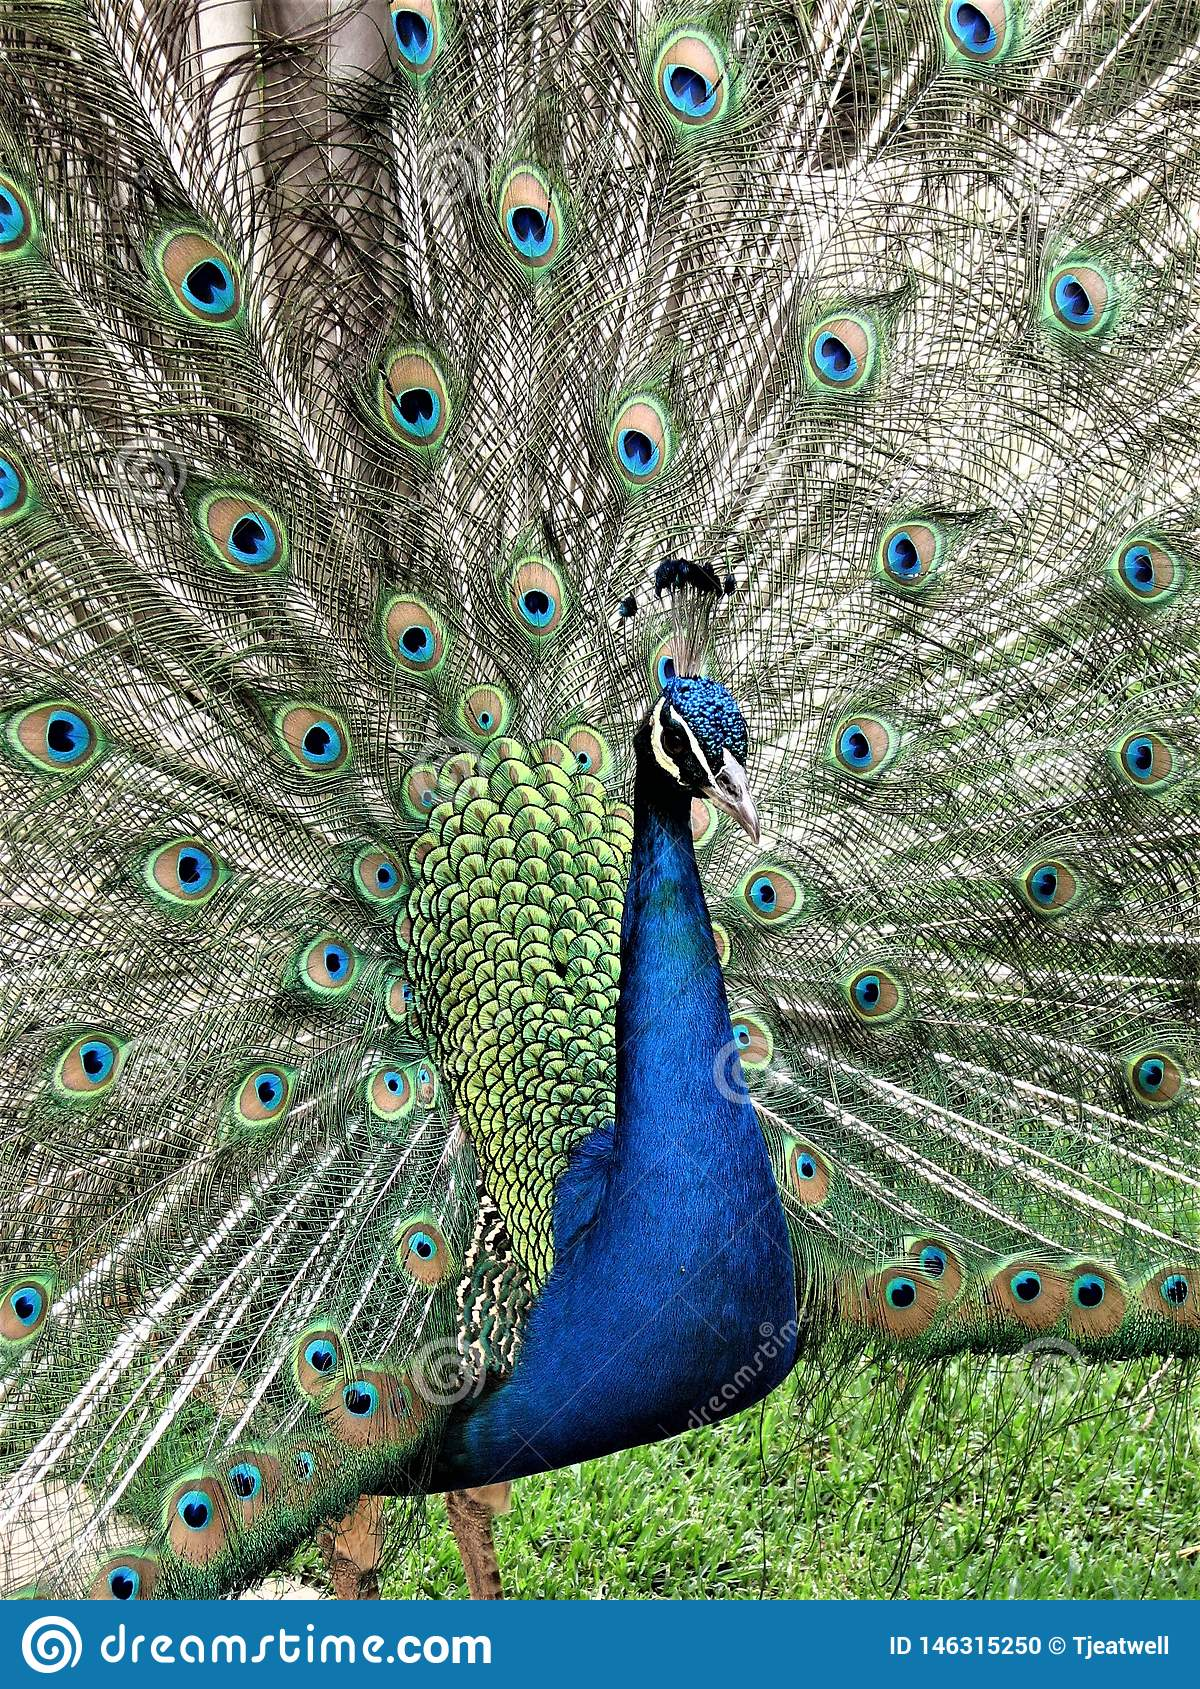 Male Peacock with feathers spread out